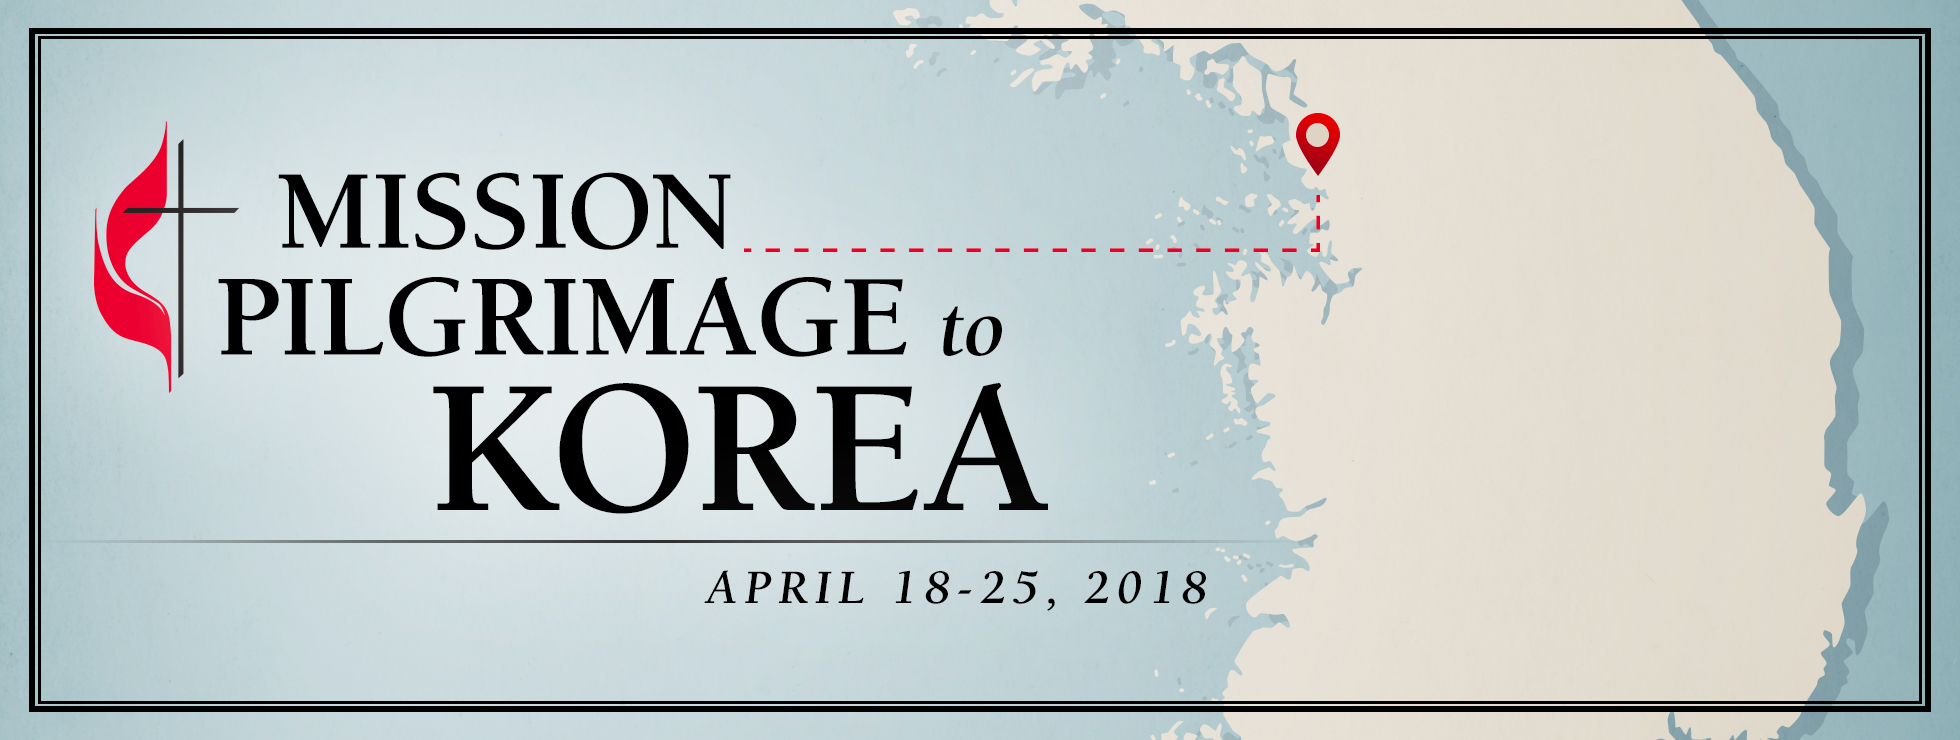 Mission Pilgrimage to Korea